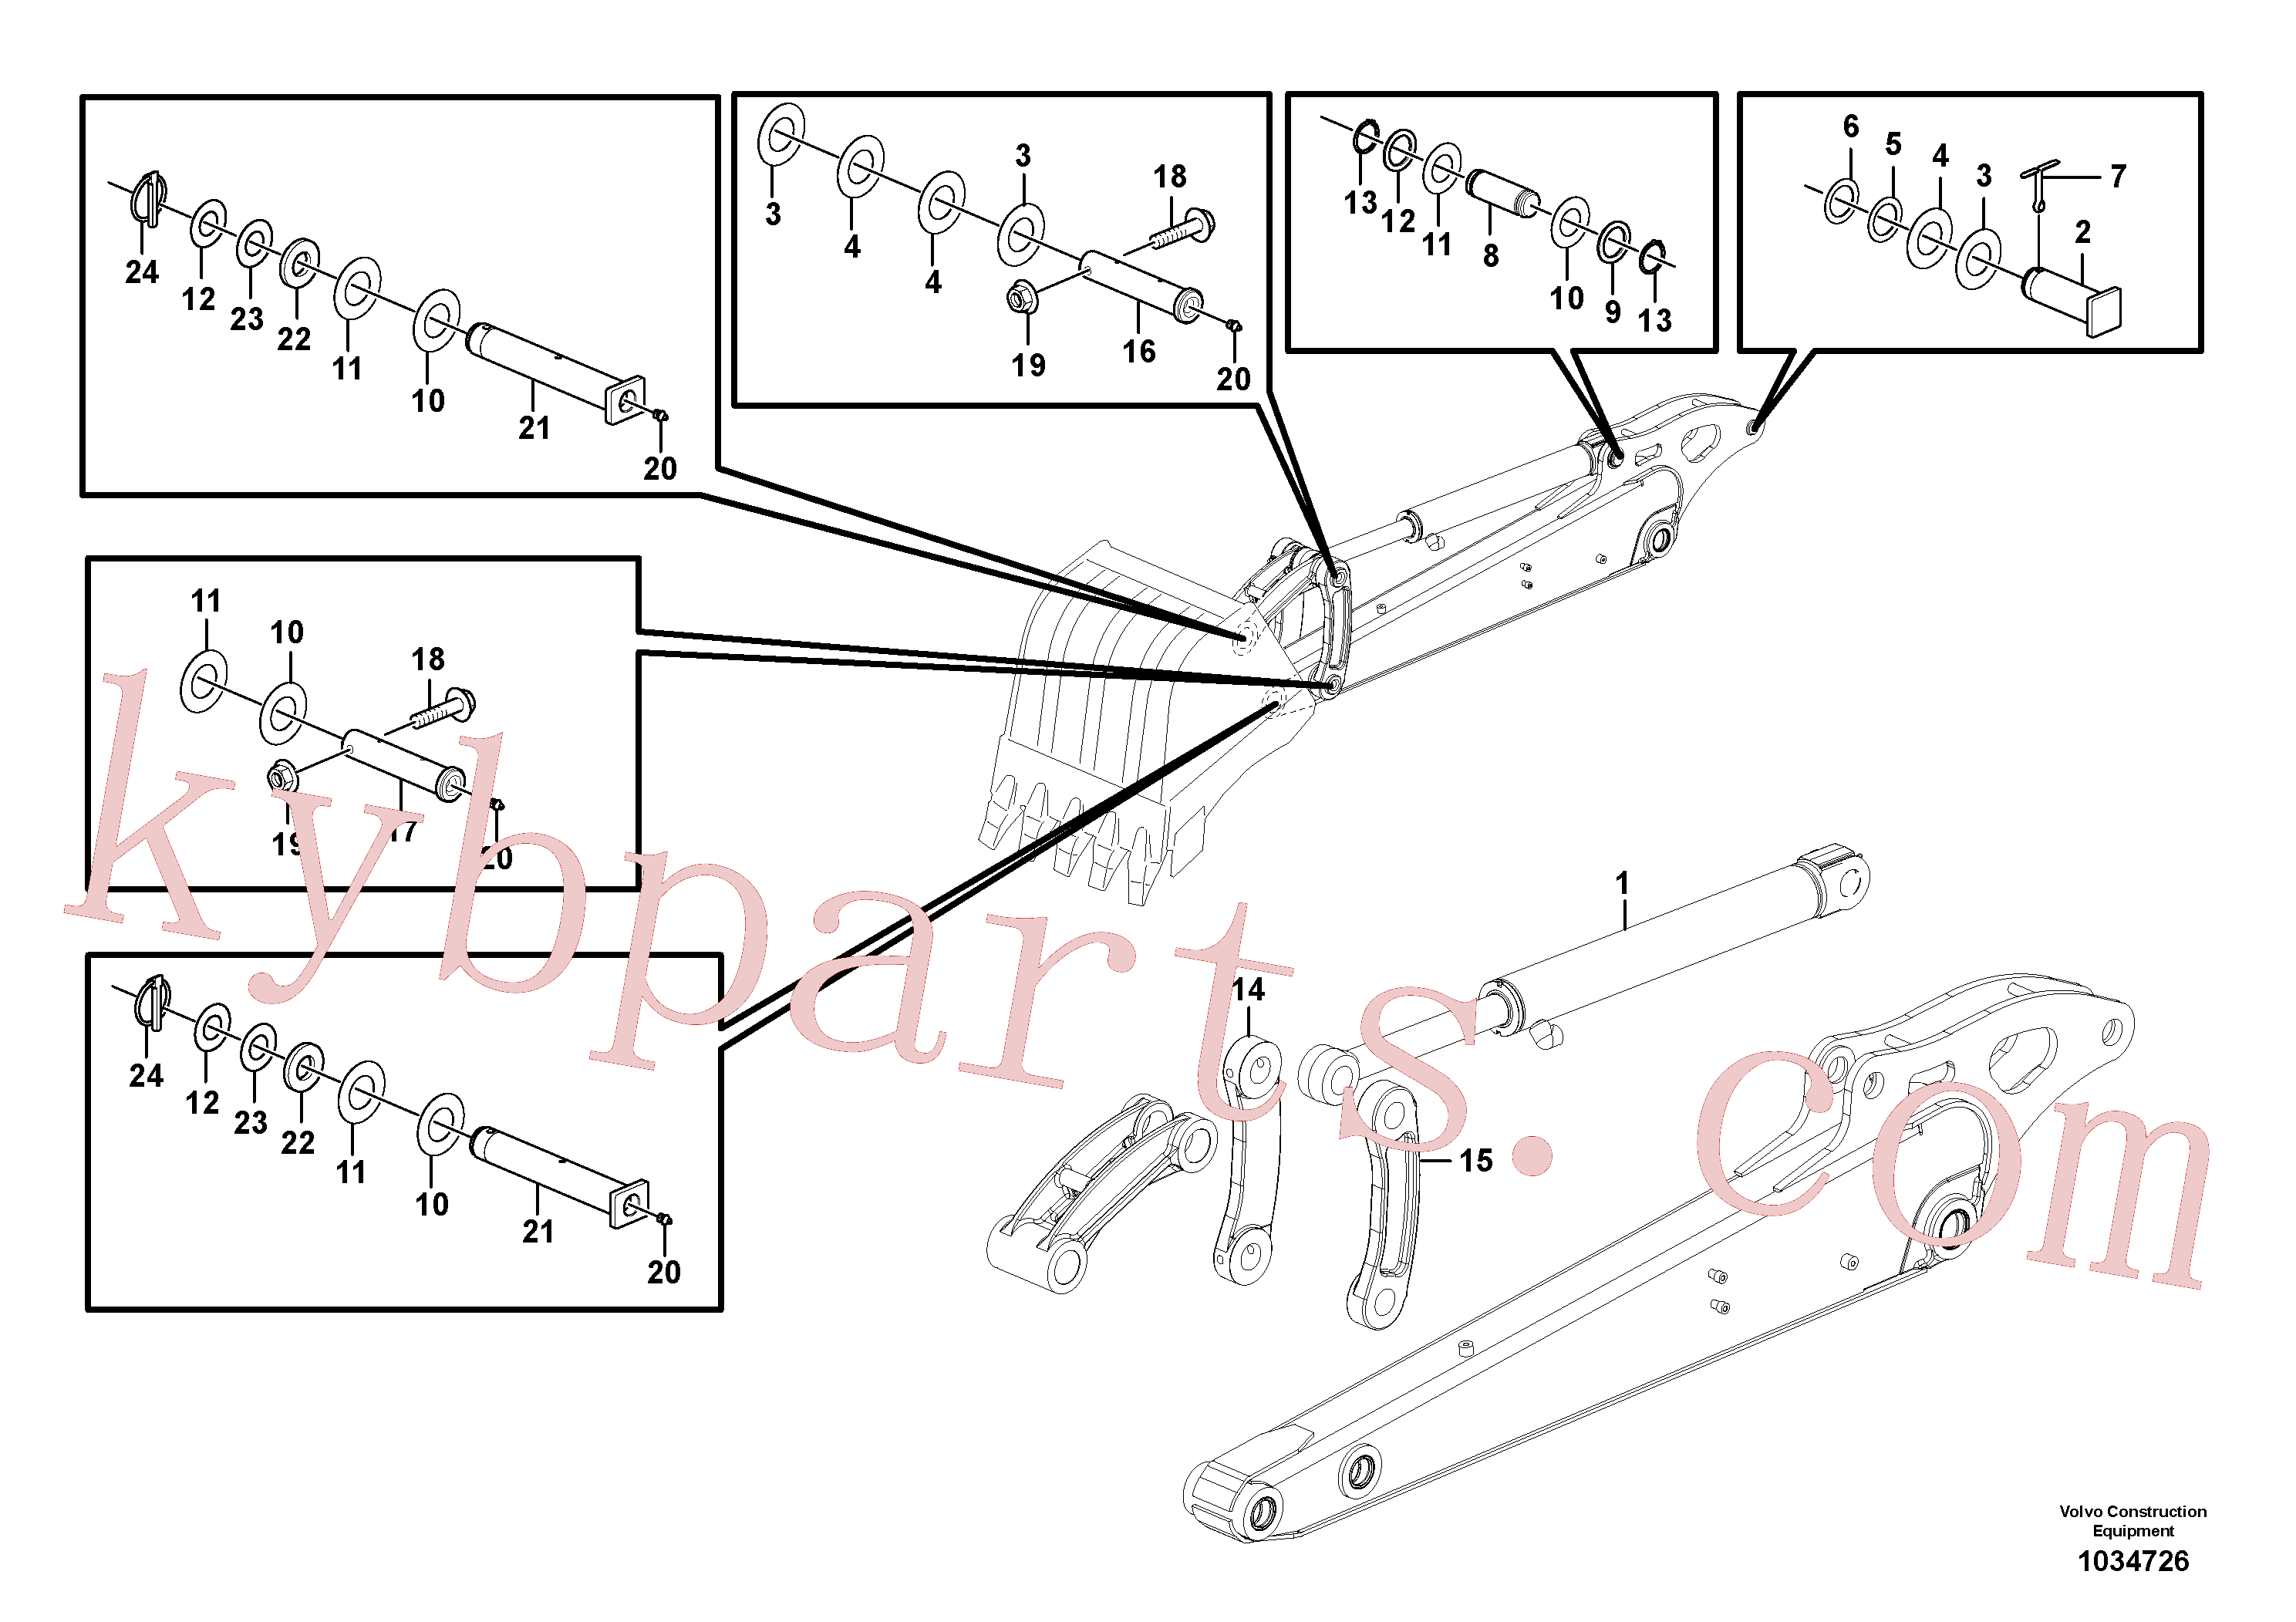 PJ3780188 for Volvo Dipper arm(1034726 assembly)